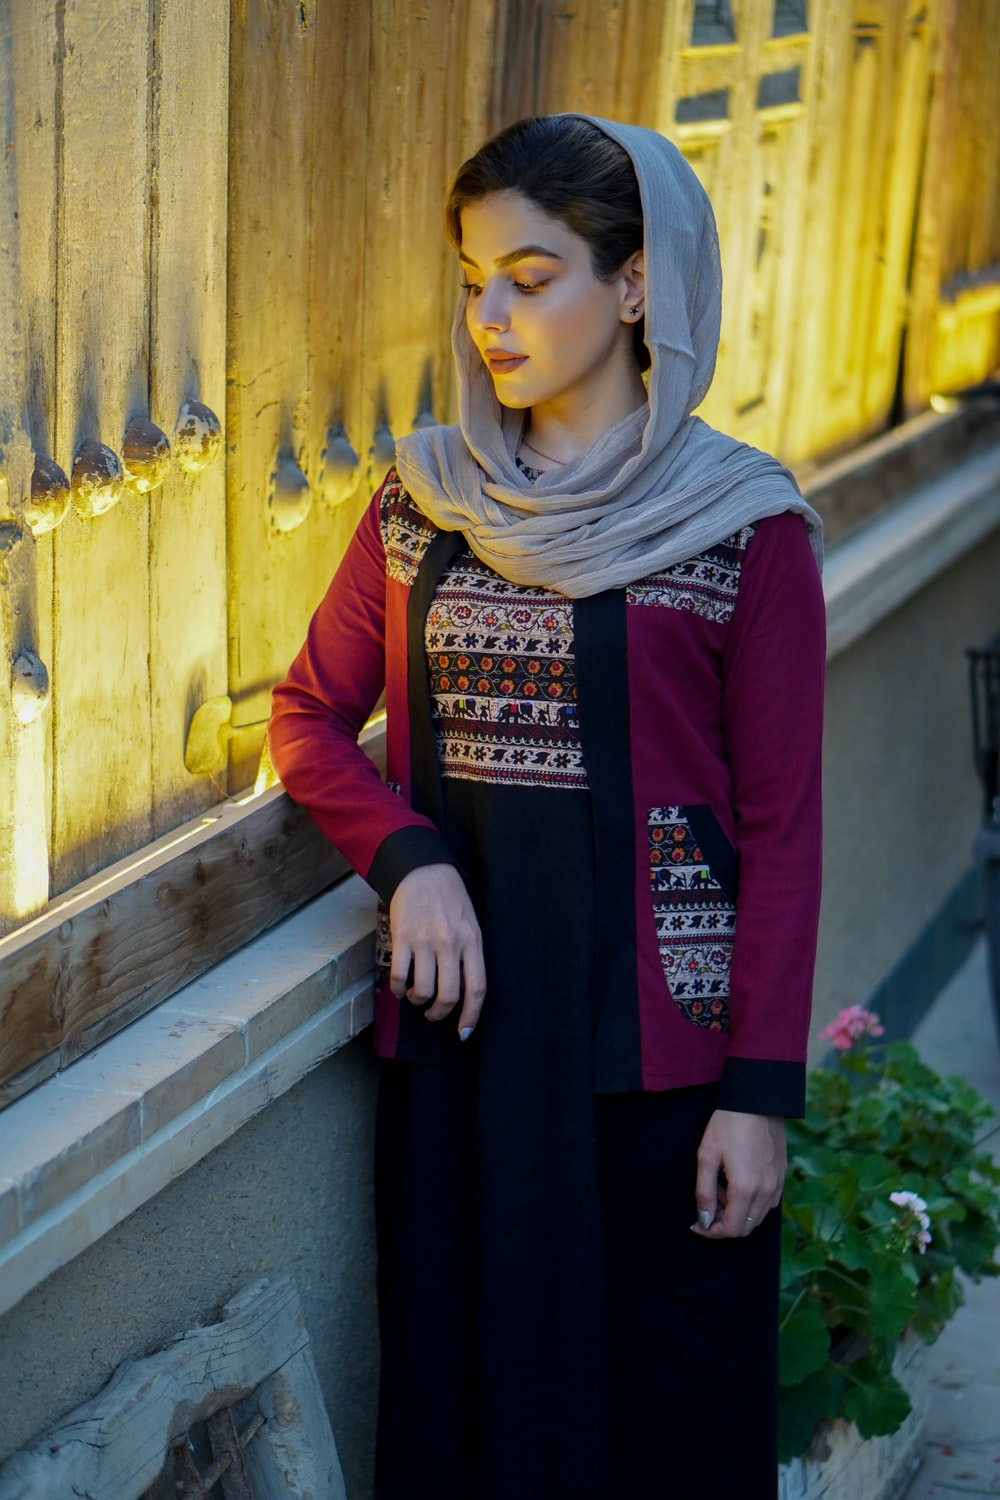 woman in red long sleeve dress wearing brown hijab standing beside yellow wooden door during daytime